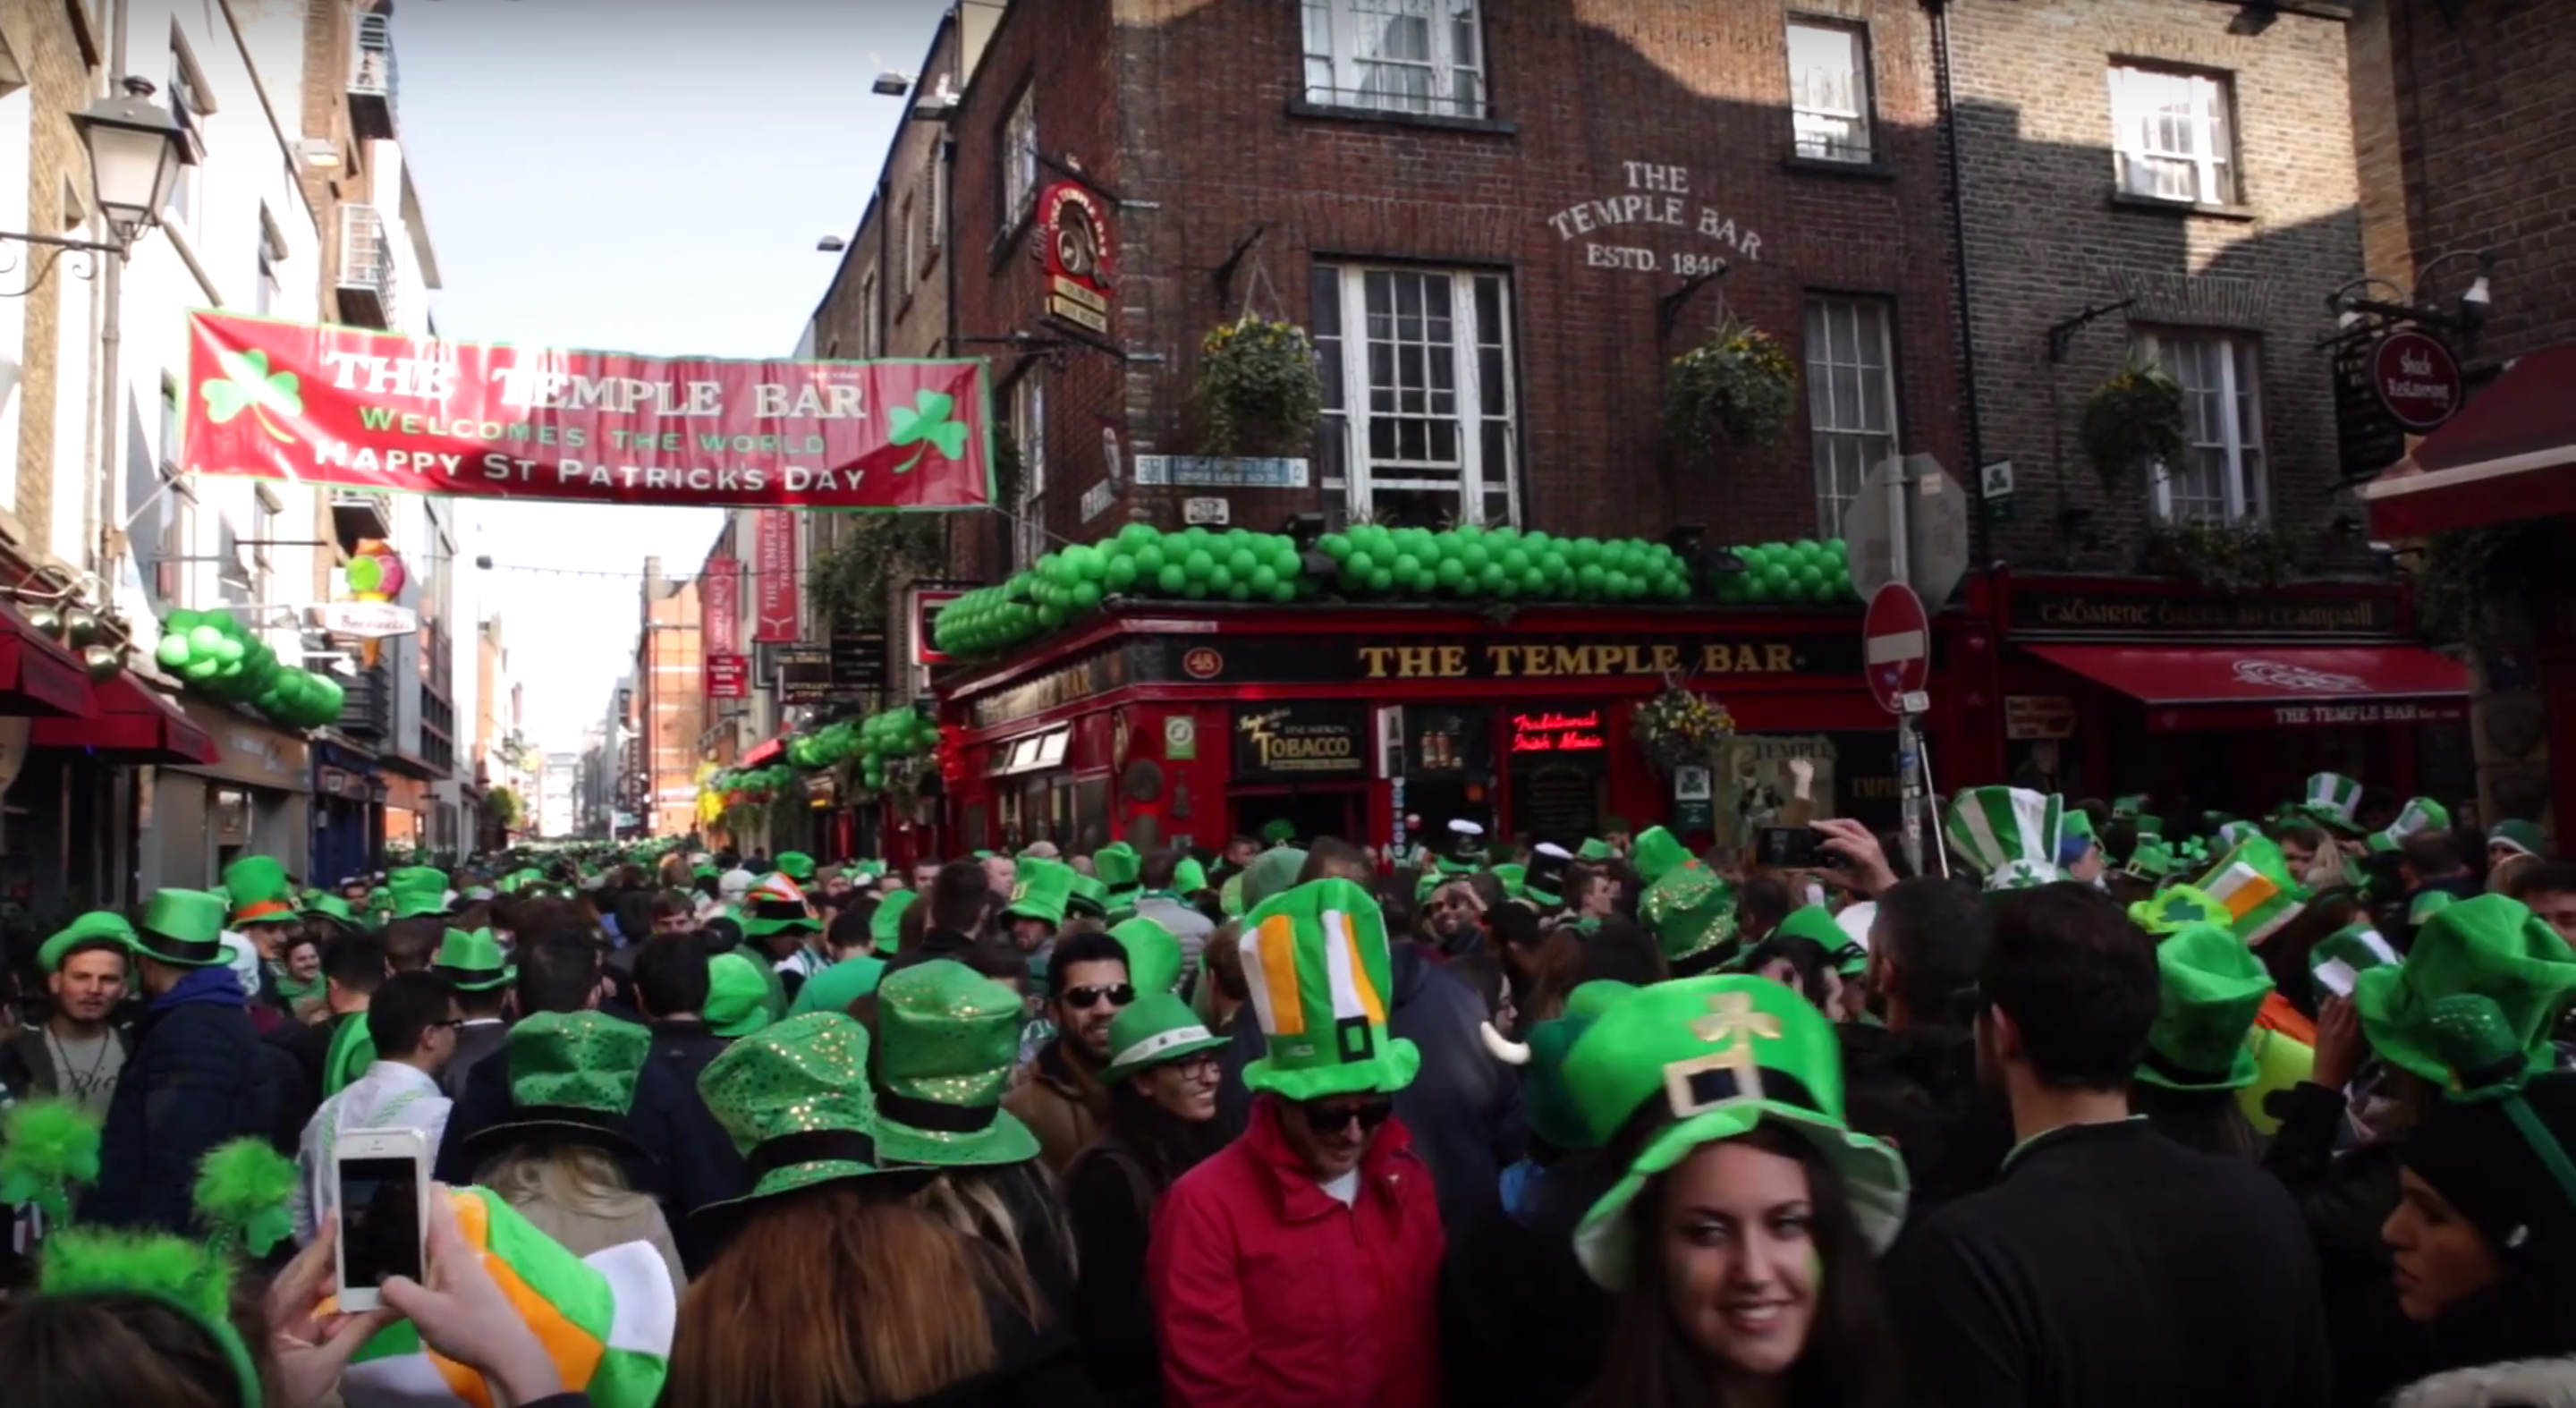 beatvyne St. Patrick's Irish Mix